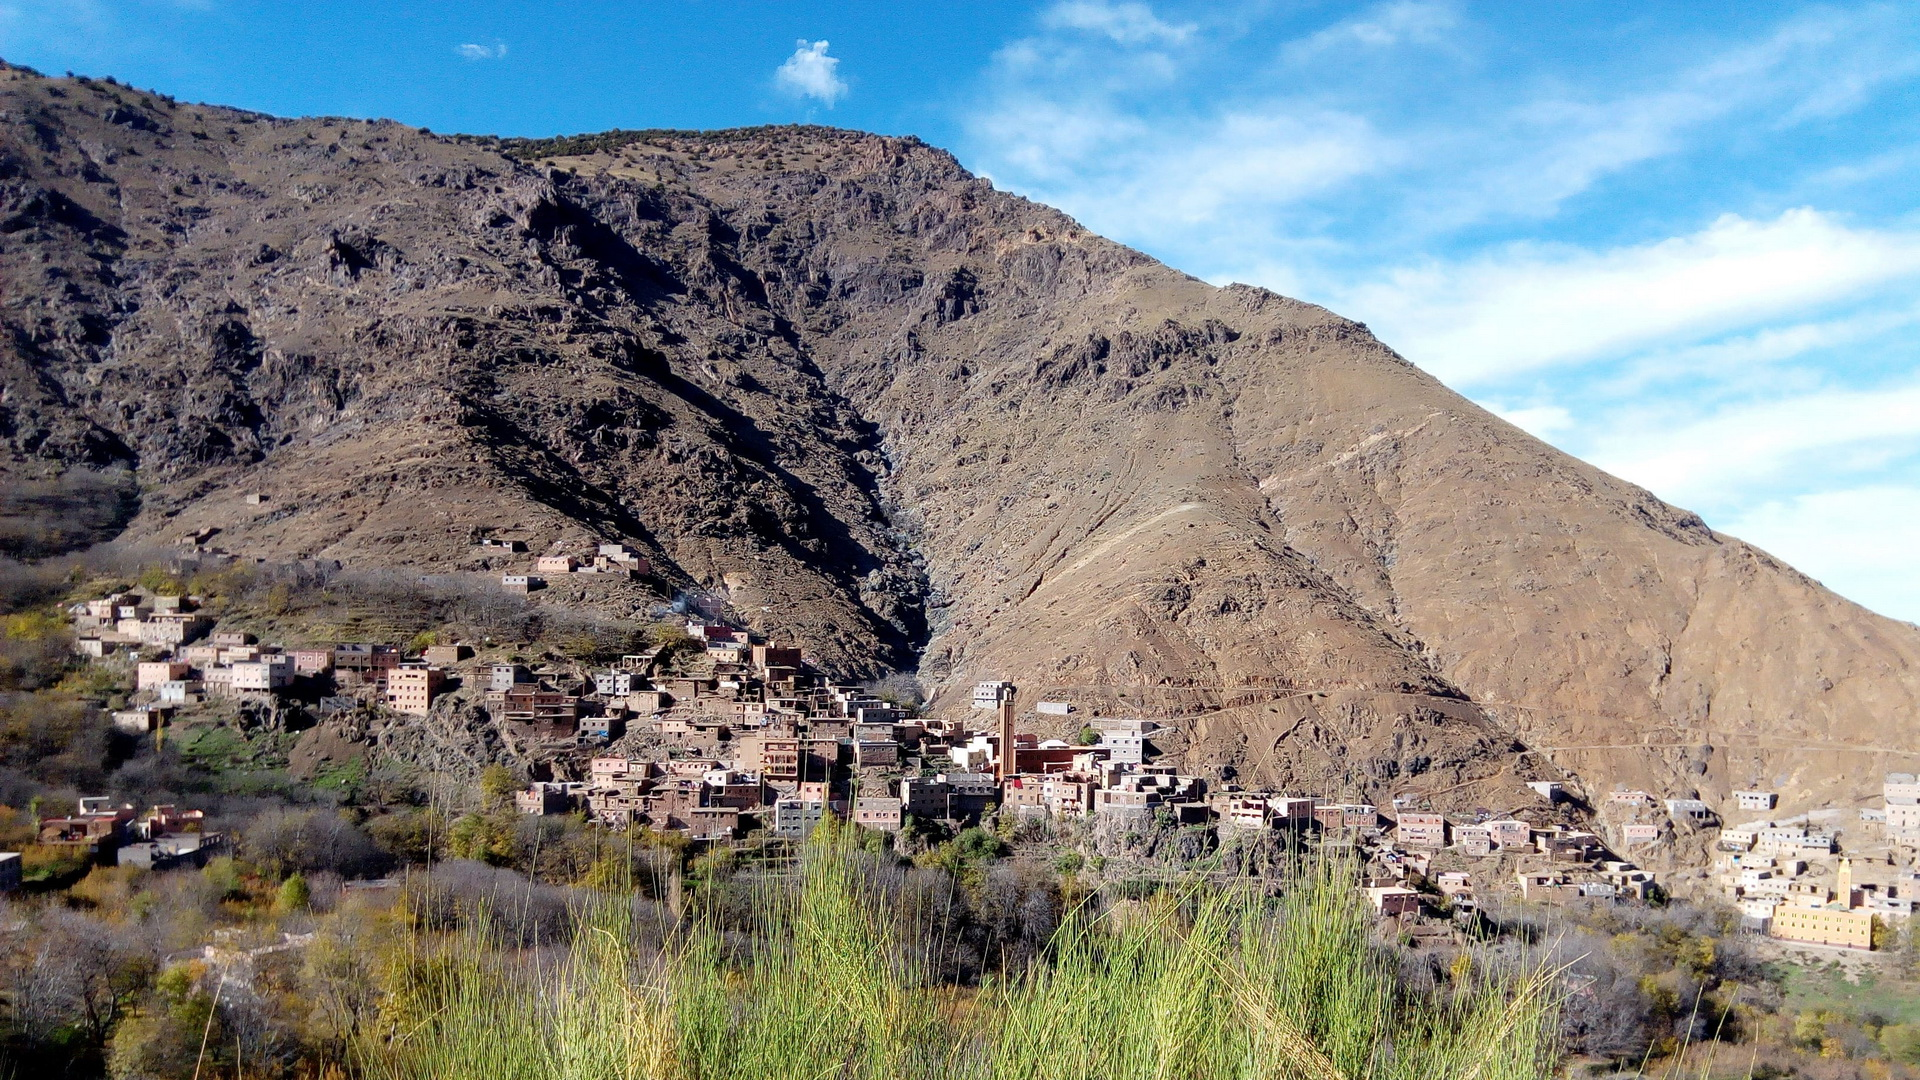 Pathfinders treks - Atlas mountains day trip